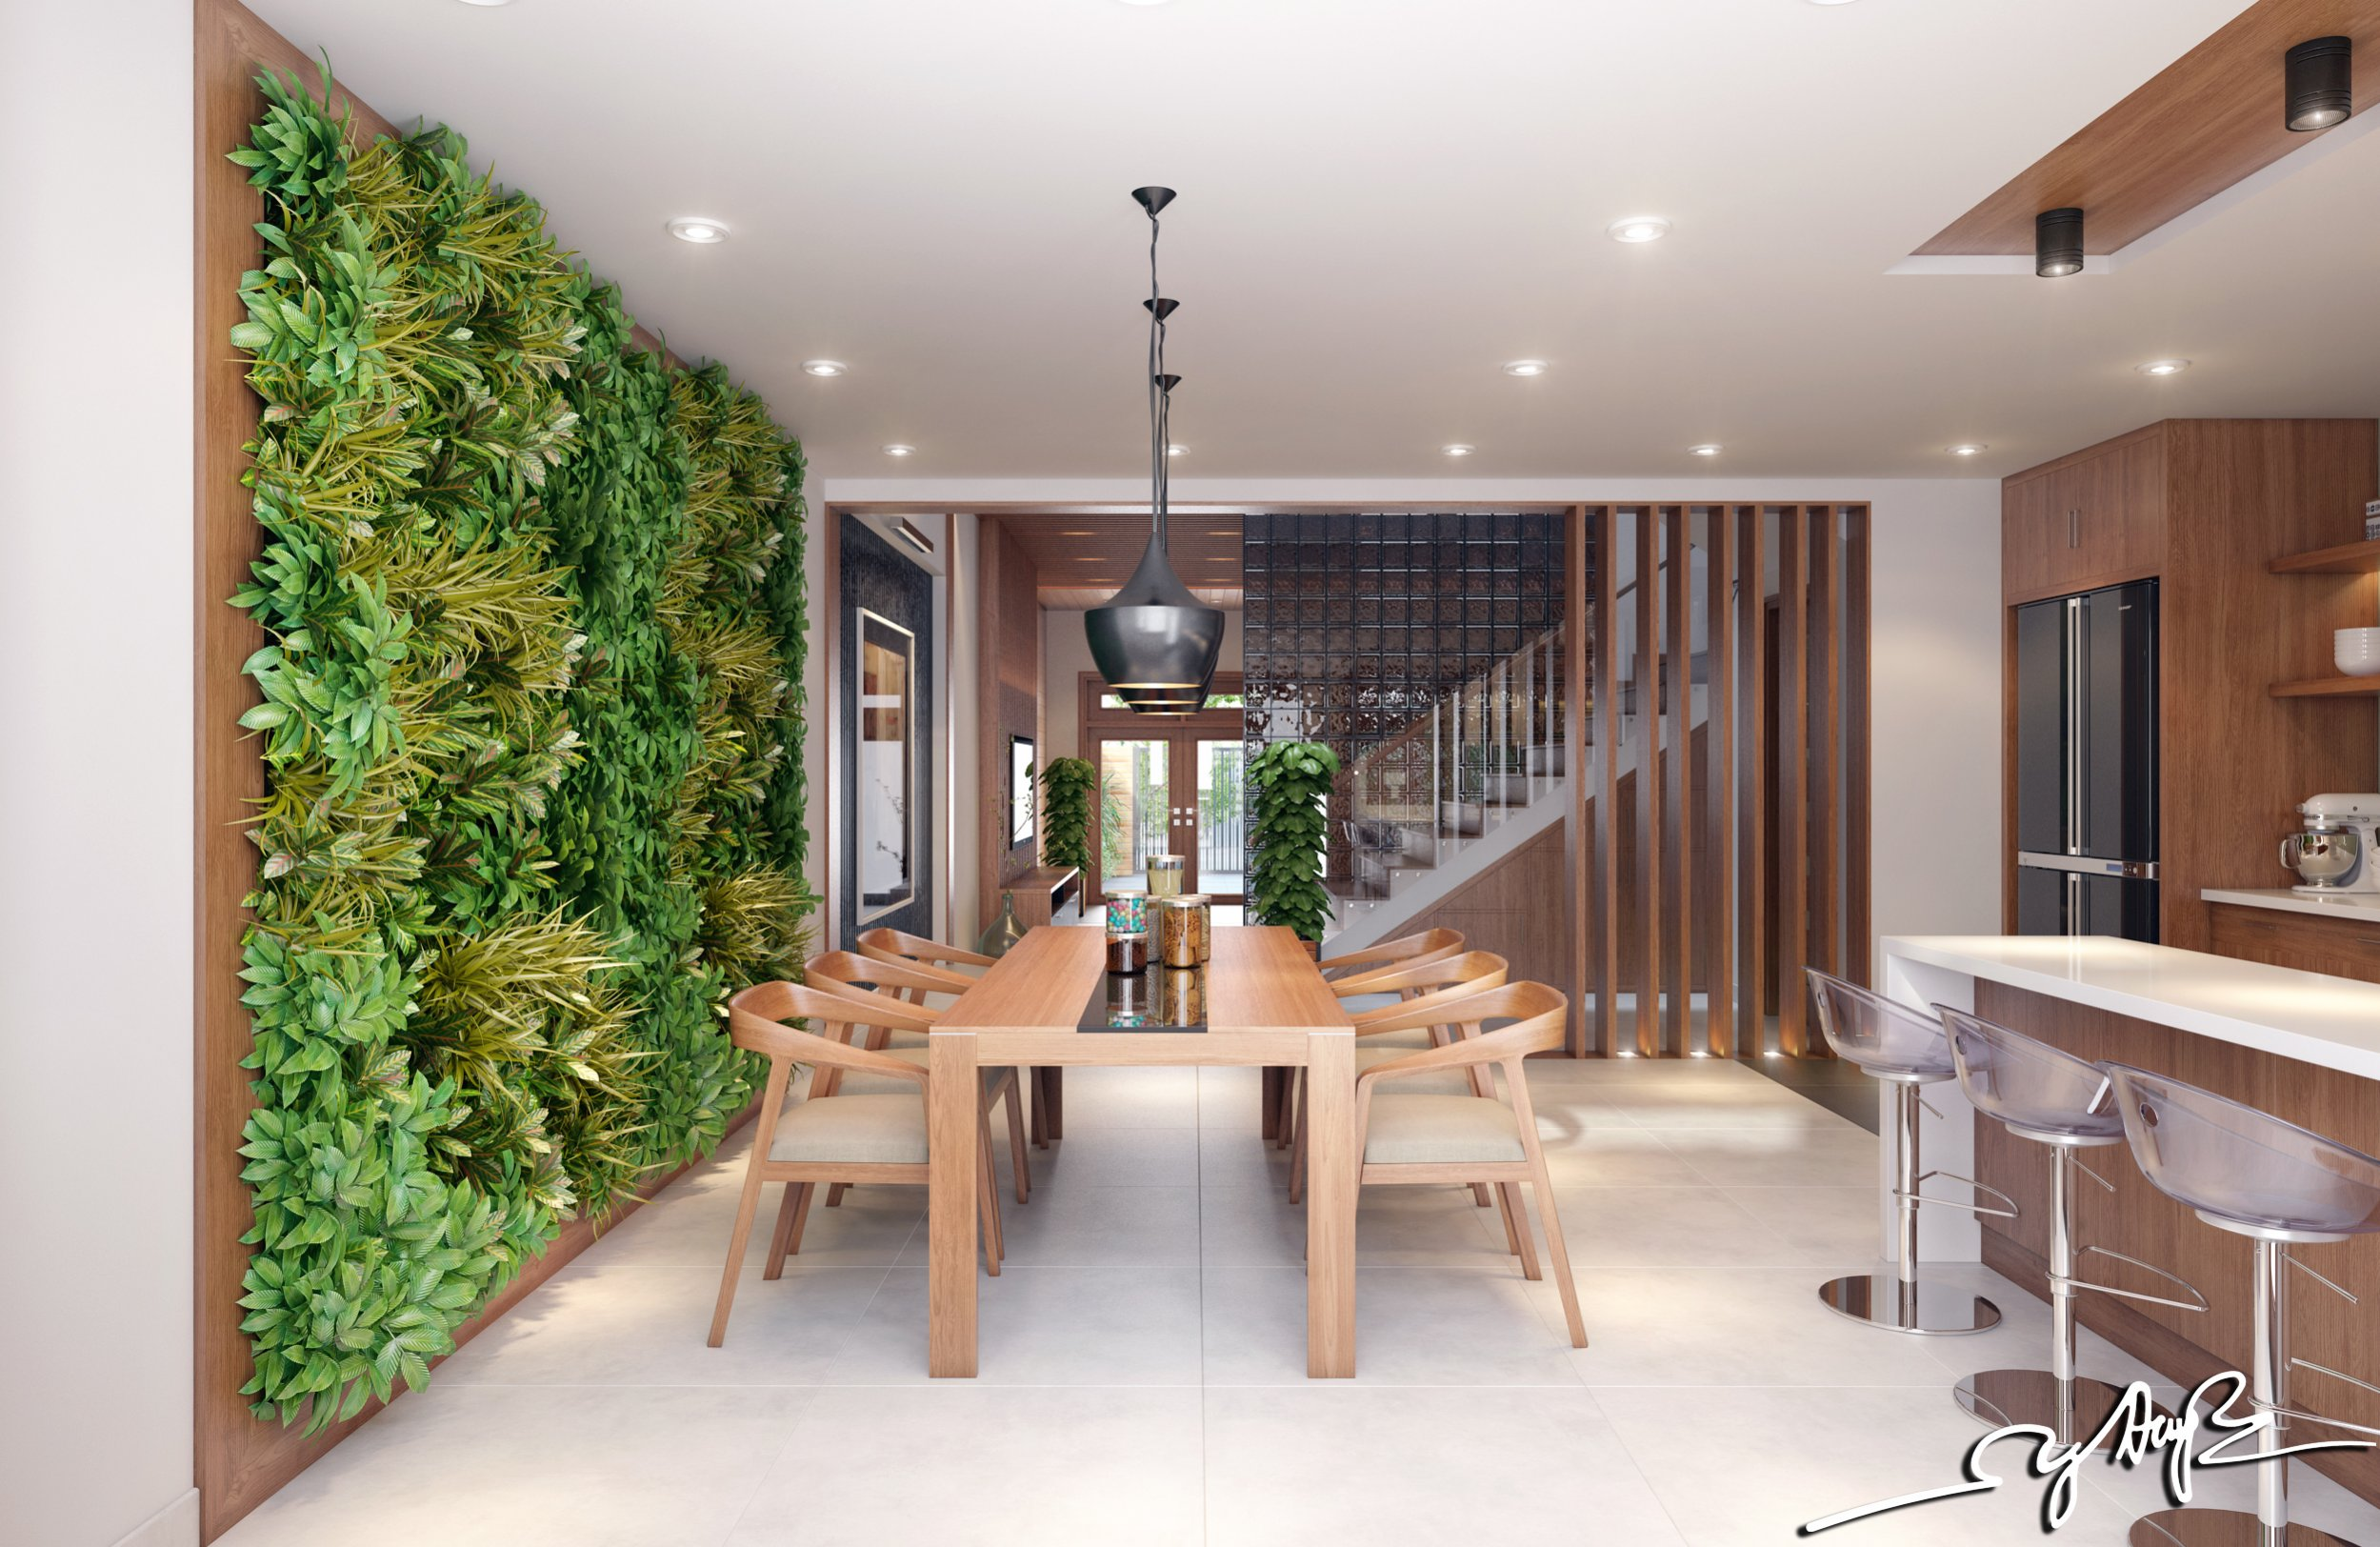 Garden wall interior design